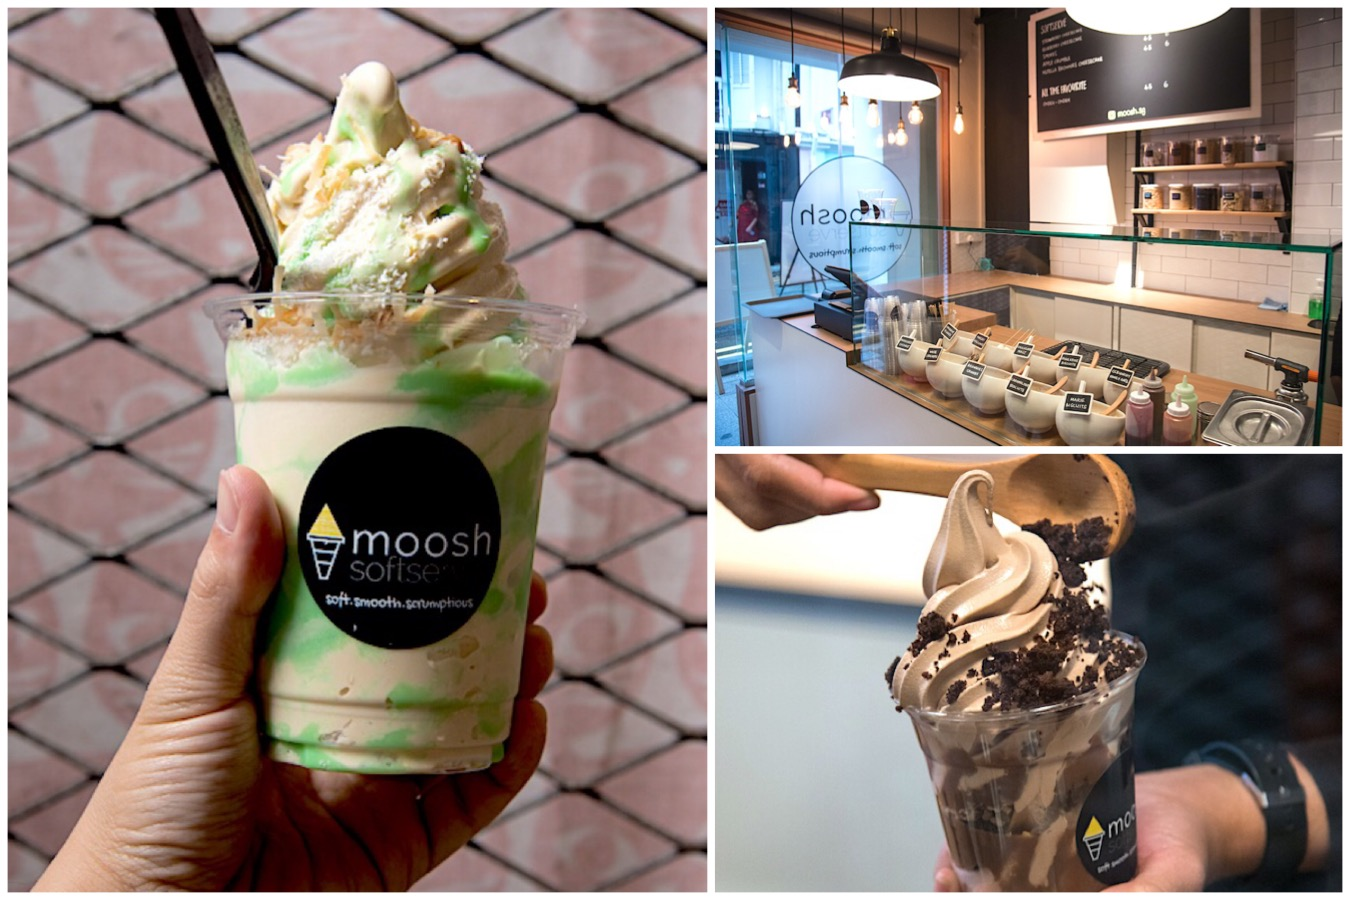 Moosh - Ondeh Ondeh And Nutella Brownie Cheesecake Softserve, From Muslim Owned Shop At Haji Lane